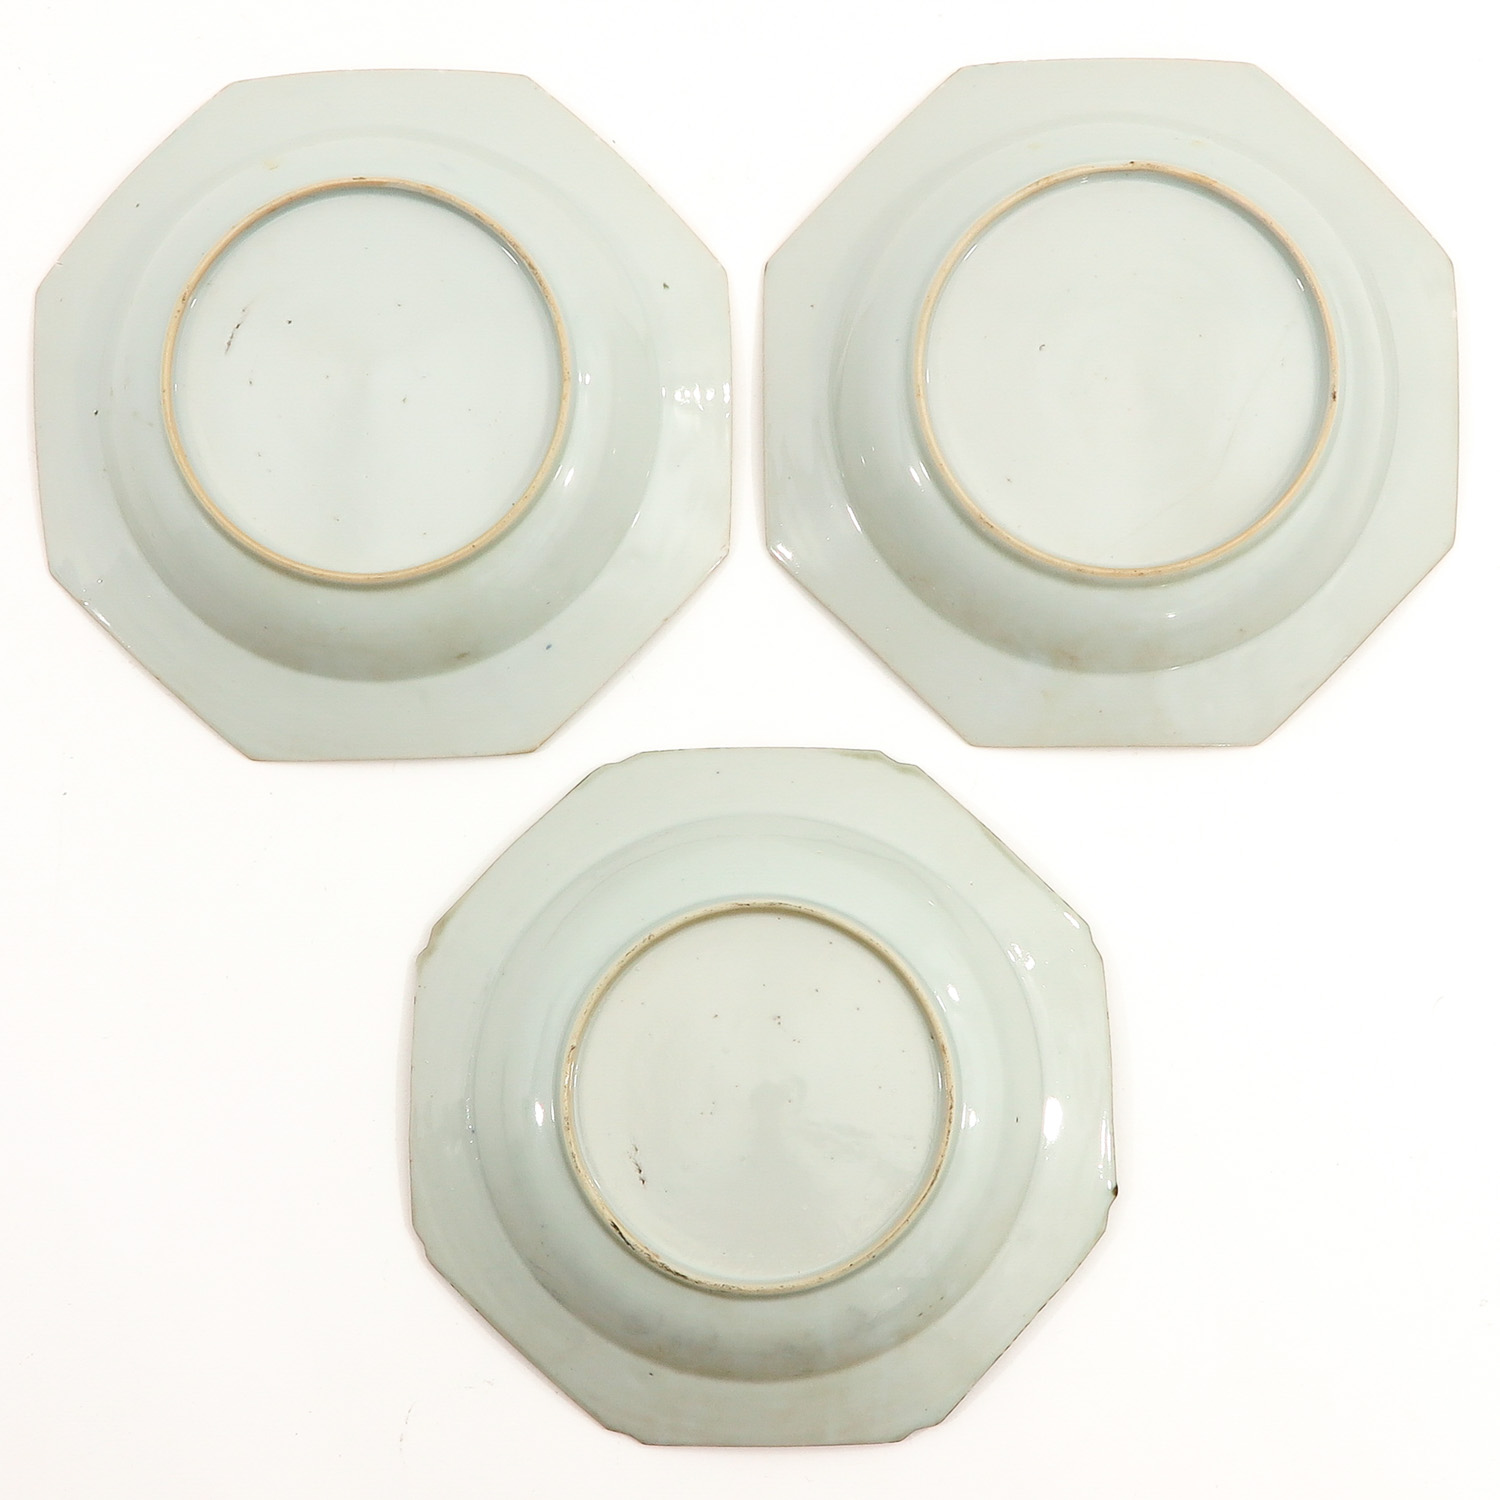 A Series of 3 Blue and White Plates - Image 2 of 10